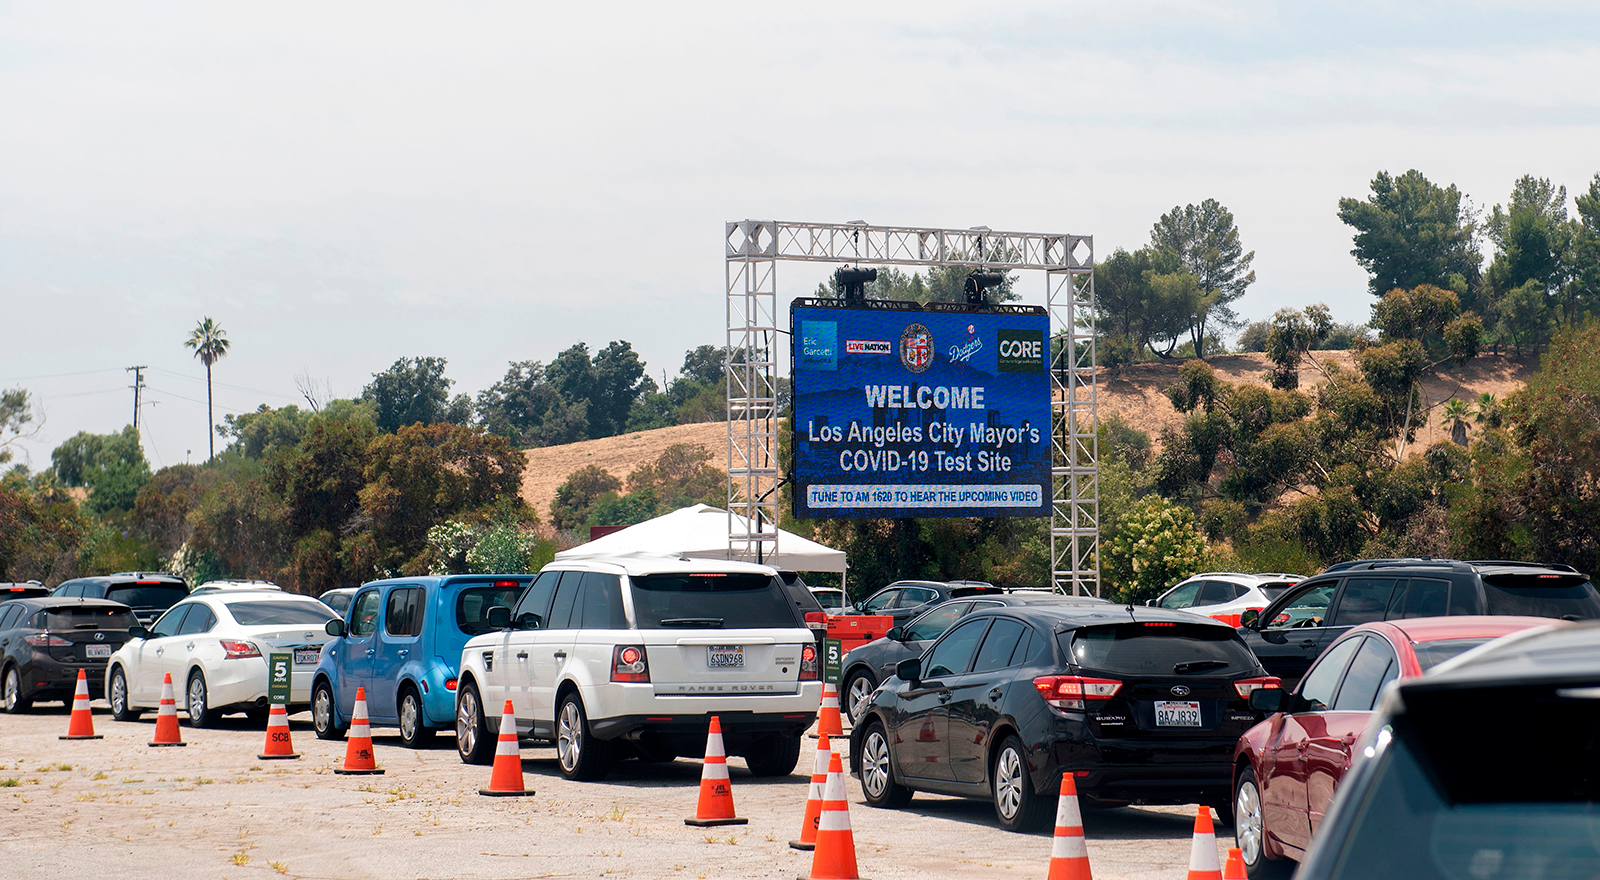 Cars wait in line at a Covid-19 testing center at Dodger Stadium, on June 25, in Los Angeles, California.